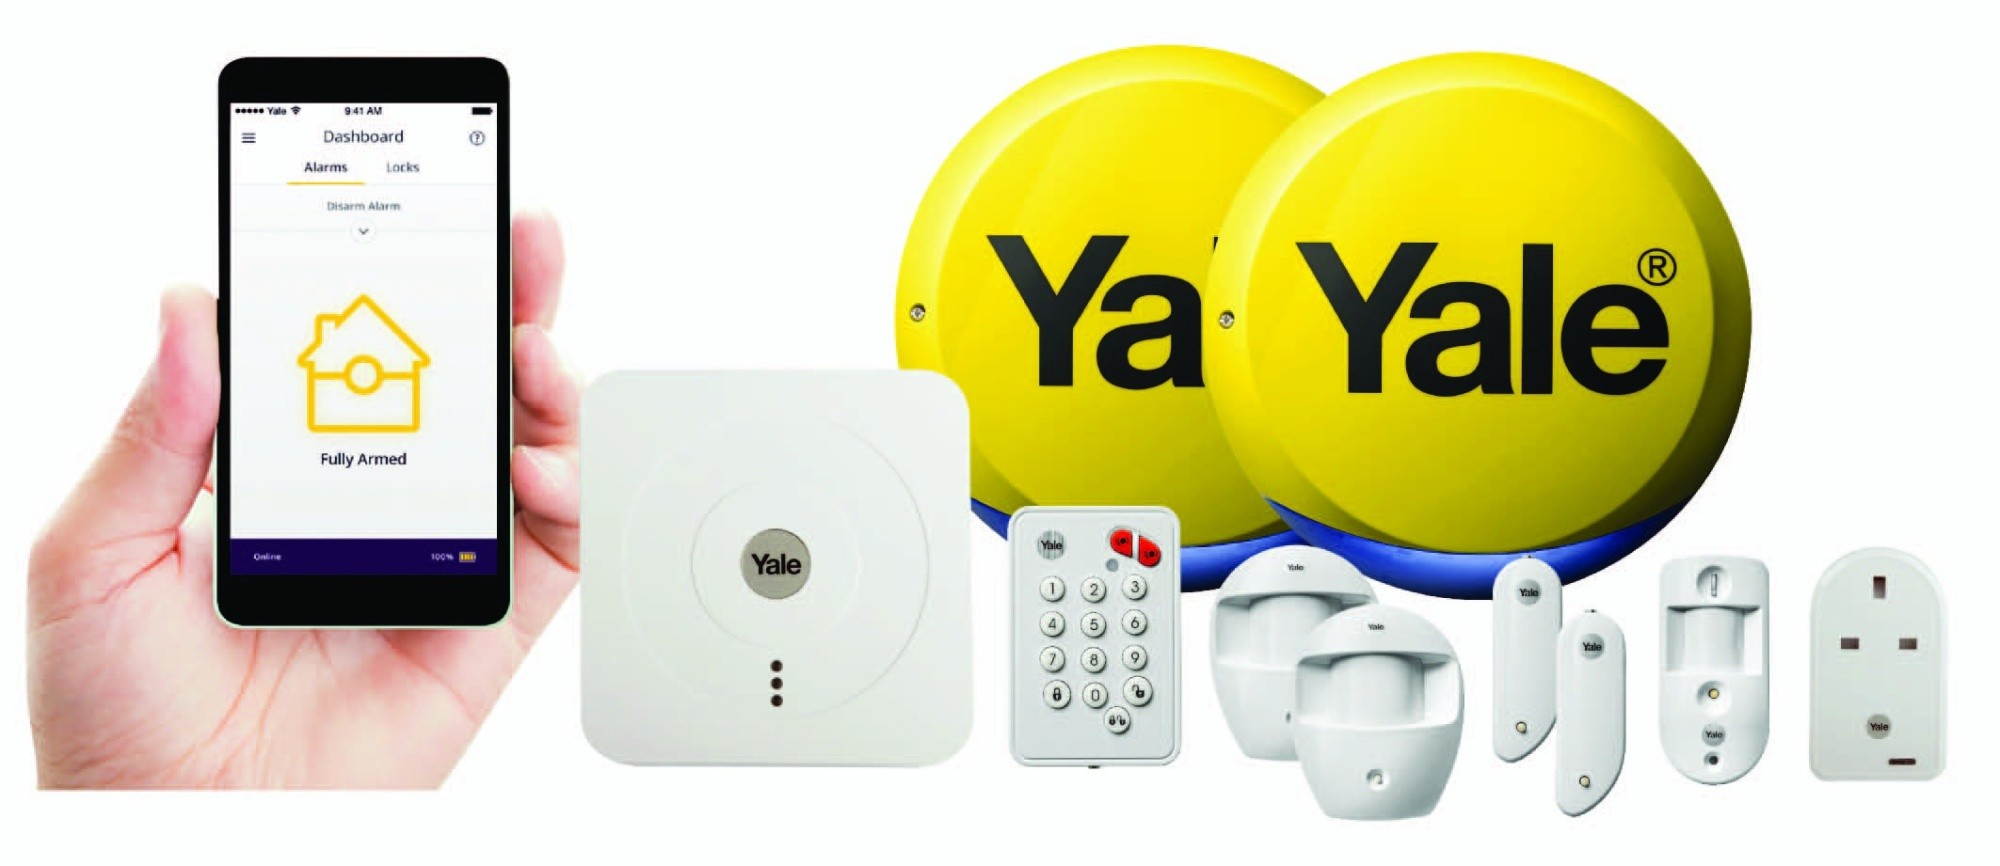 yale wireless smart home security alarm view and control. Black Bedroom Furniture Sets. Home Design Ideas